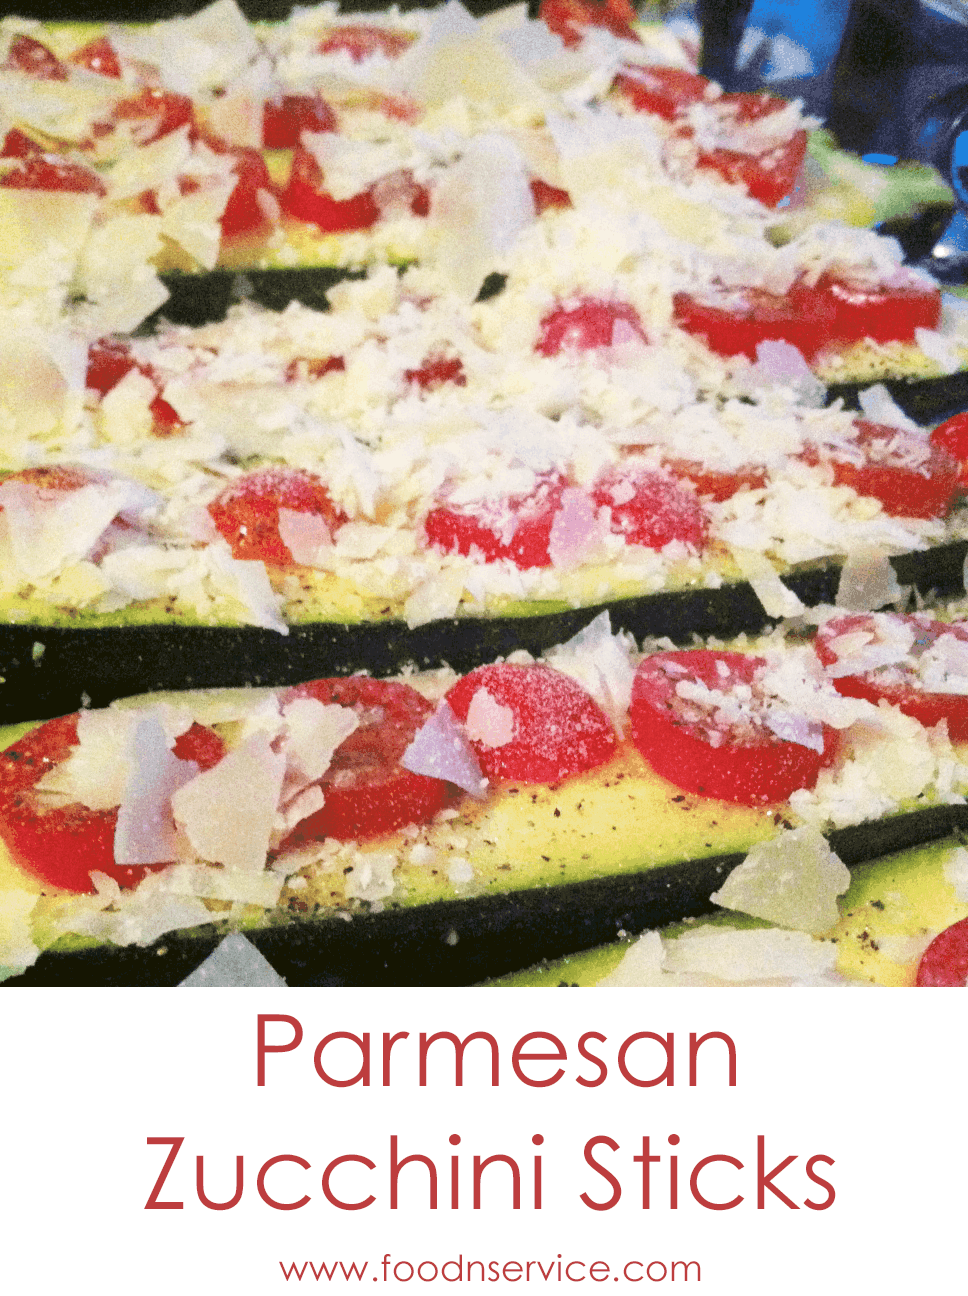 parmesan zucchini sticks recipe #vegetarian #recipe #healthyrecipes